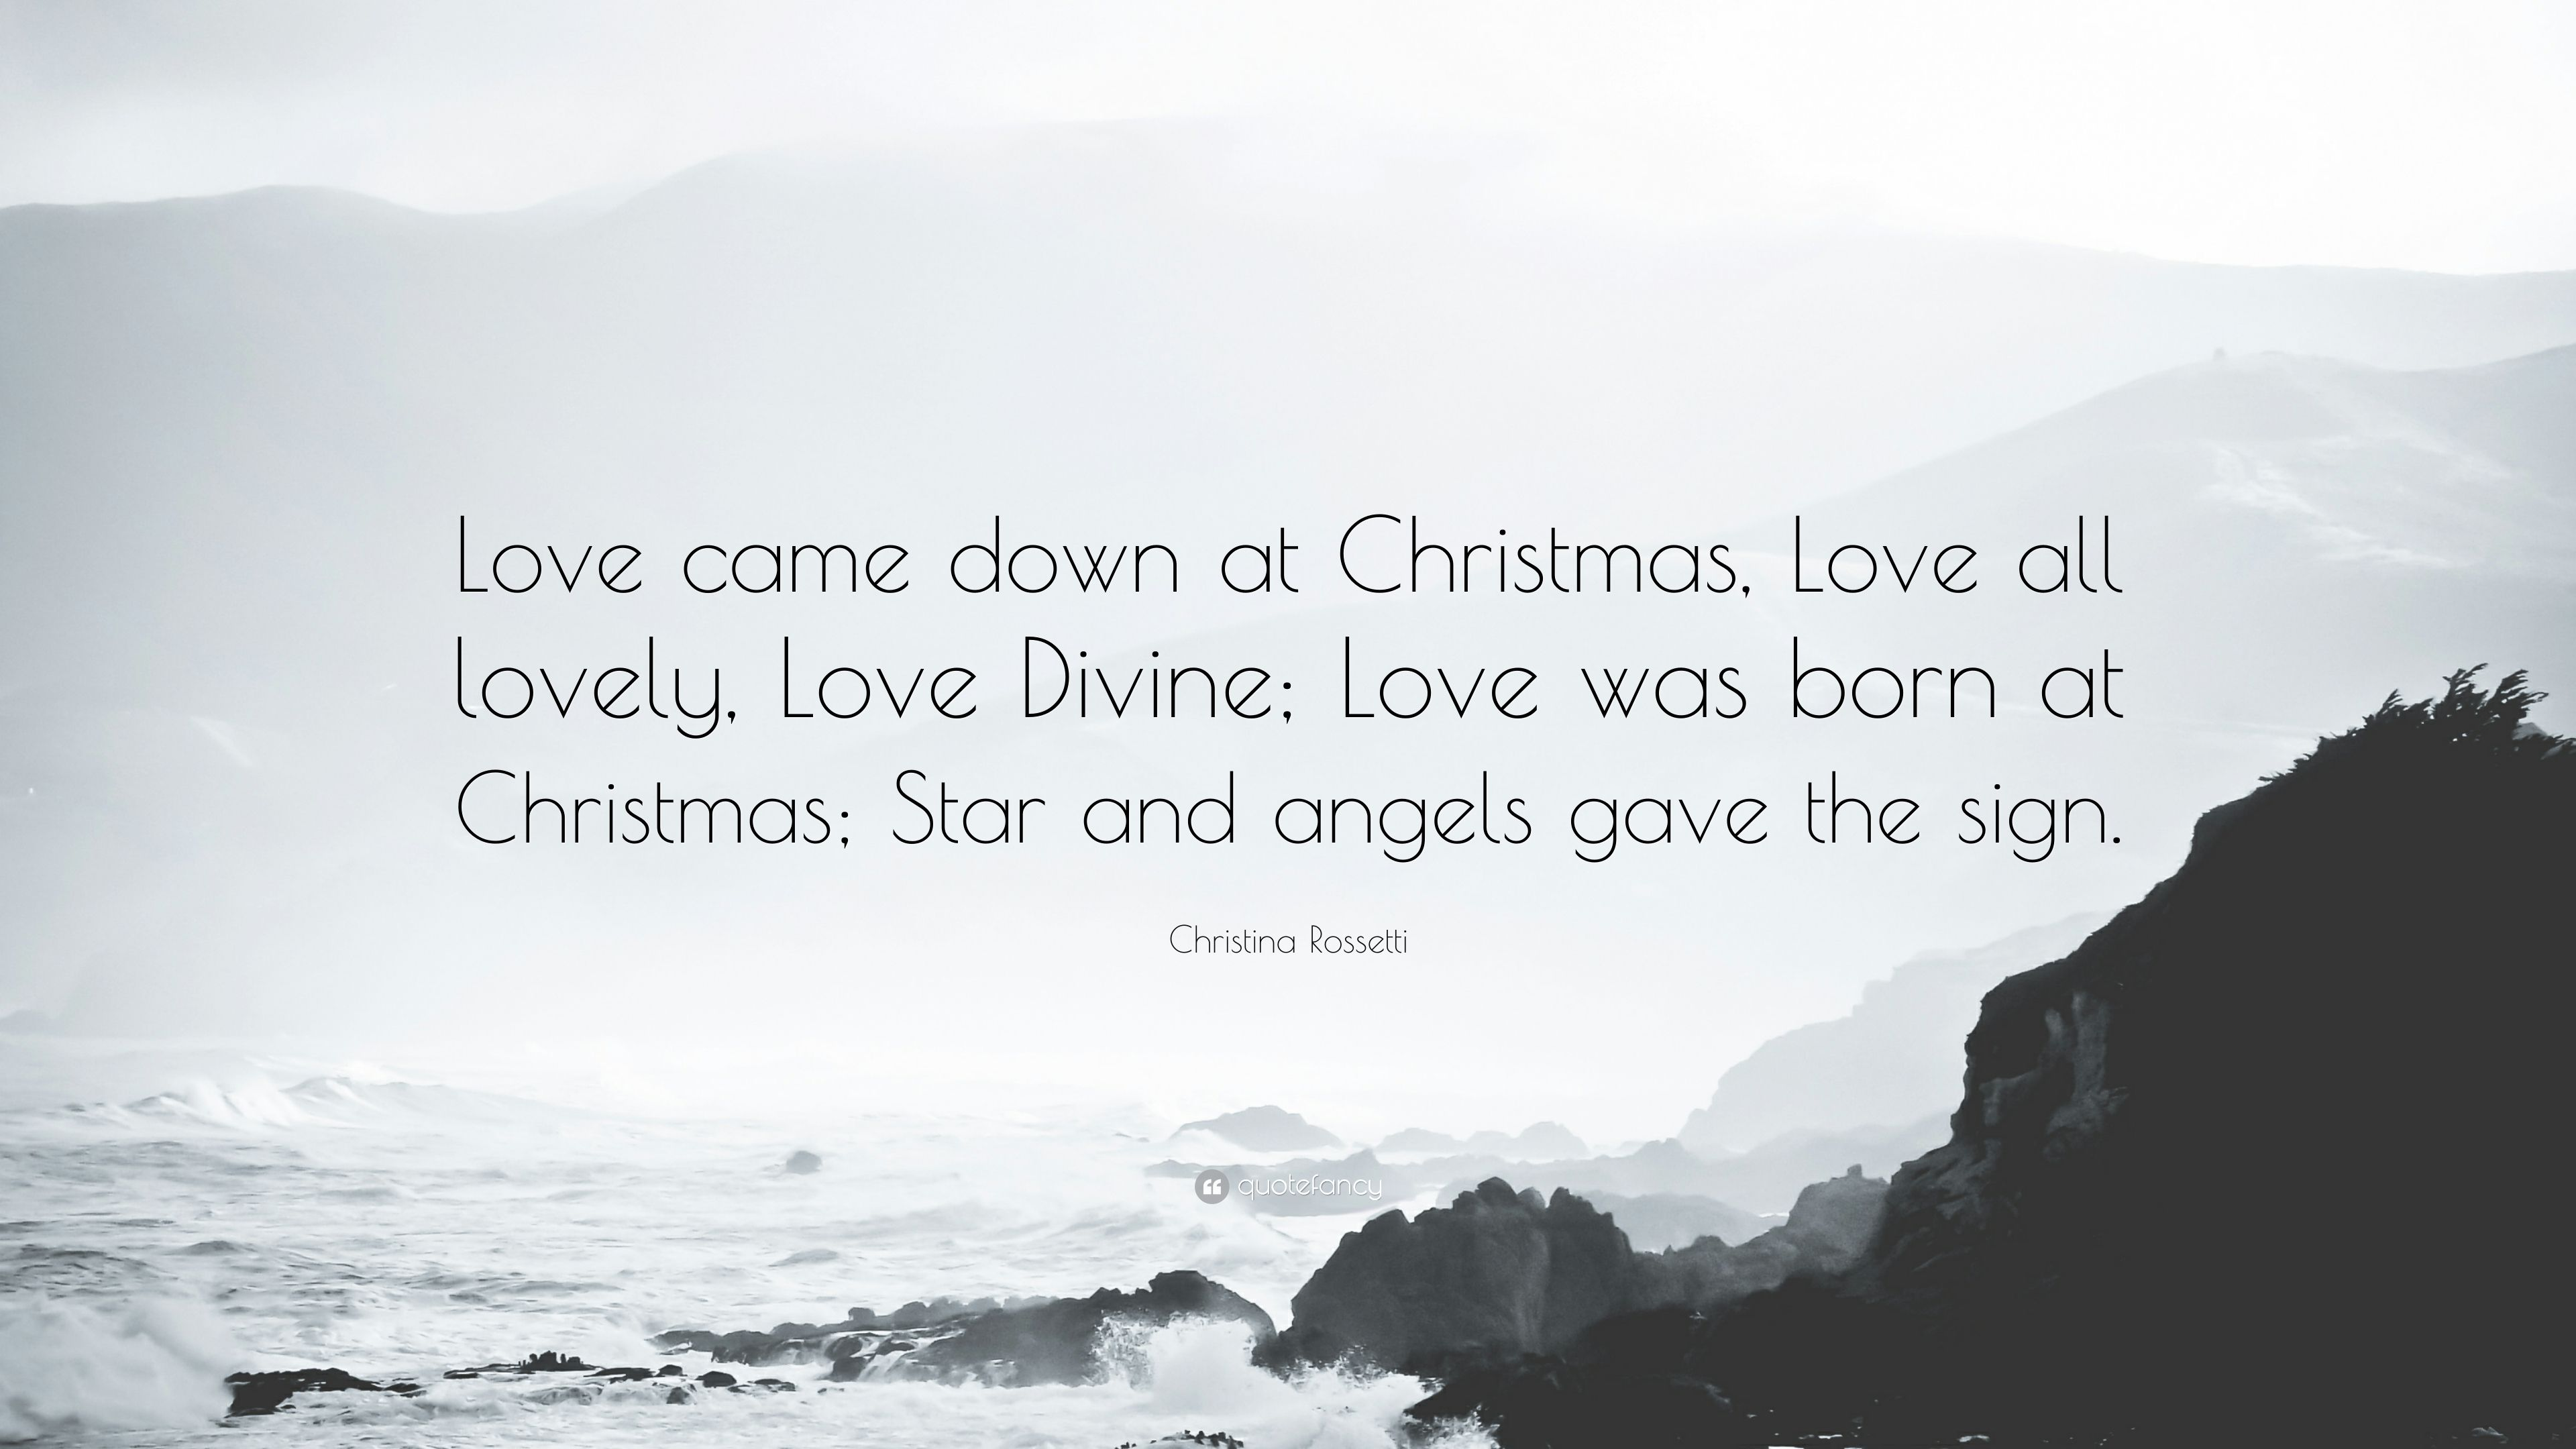 christina rossetti quote love came down at christmas love all lovely love